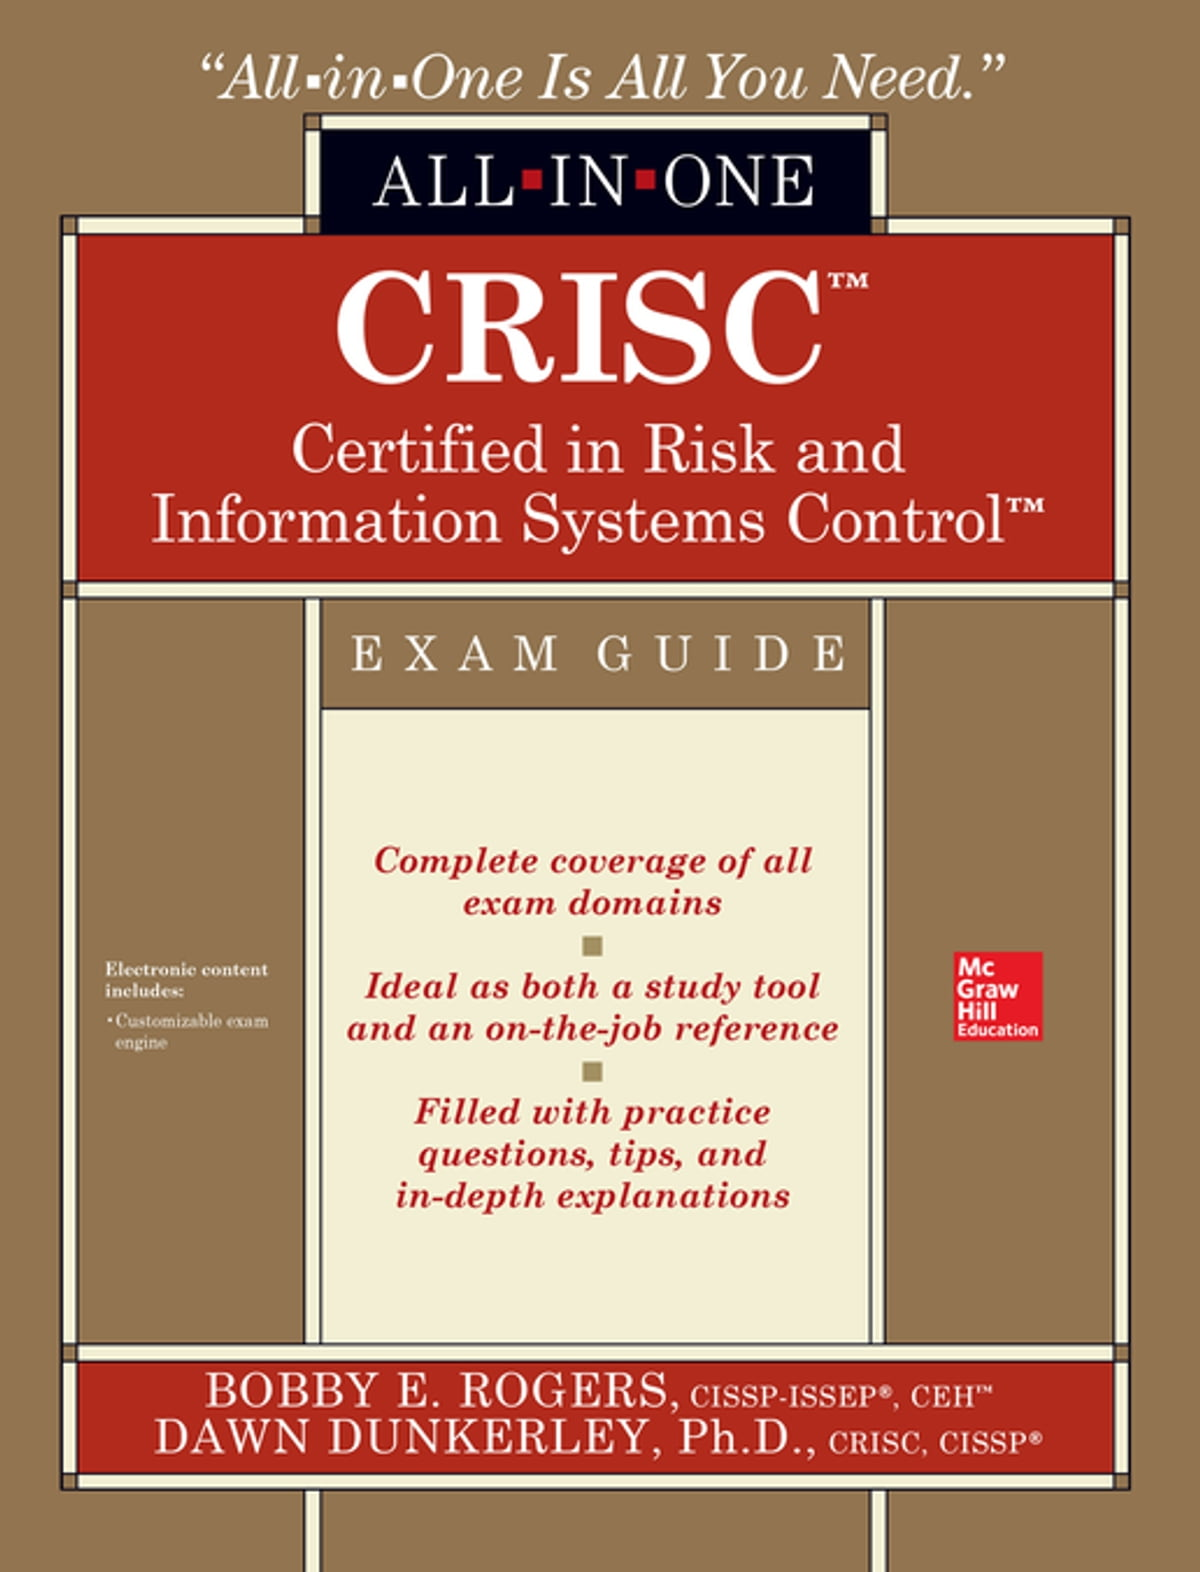 CRISC Certified in Risk and Information Systems Control All-in-One Exam  Guide eBook by Dawn Dunkerley - 9780071847148 | Rakuten Kobo